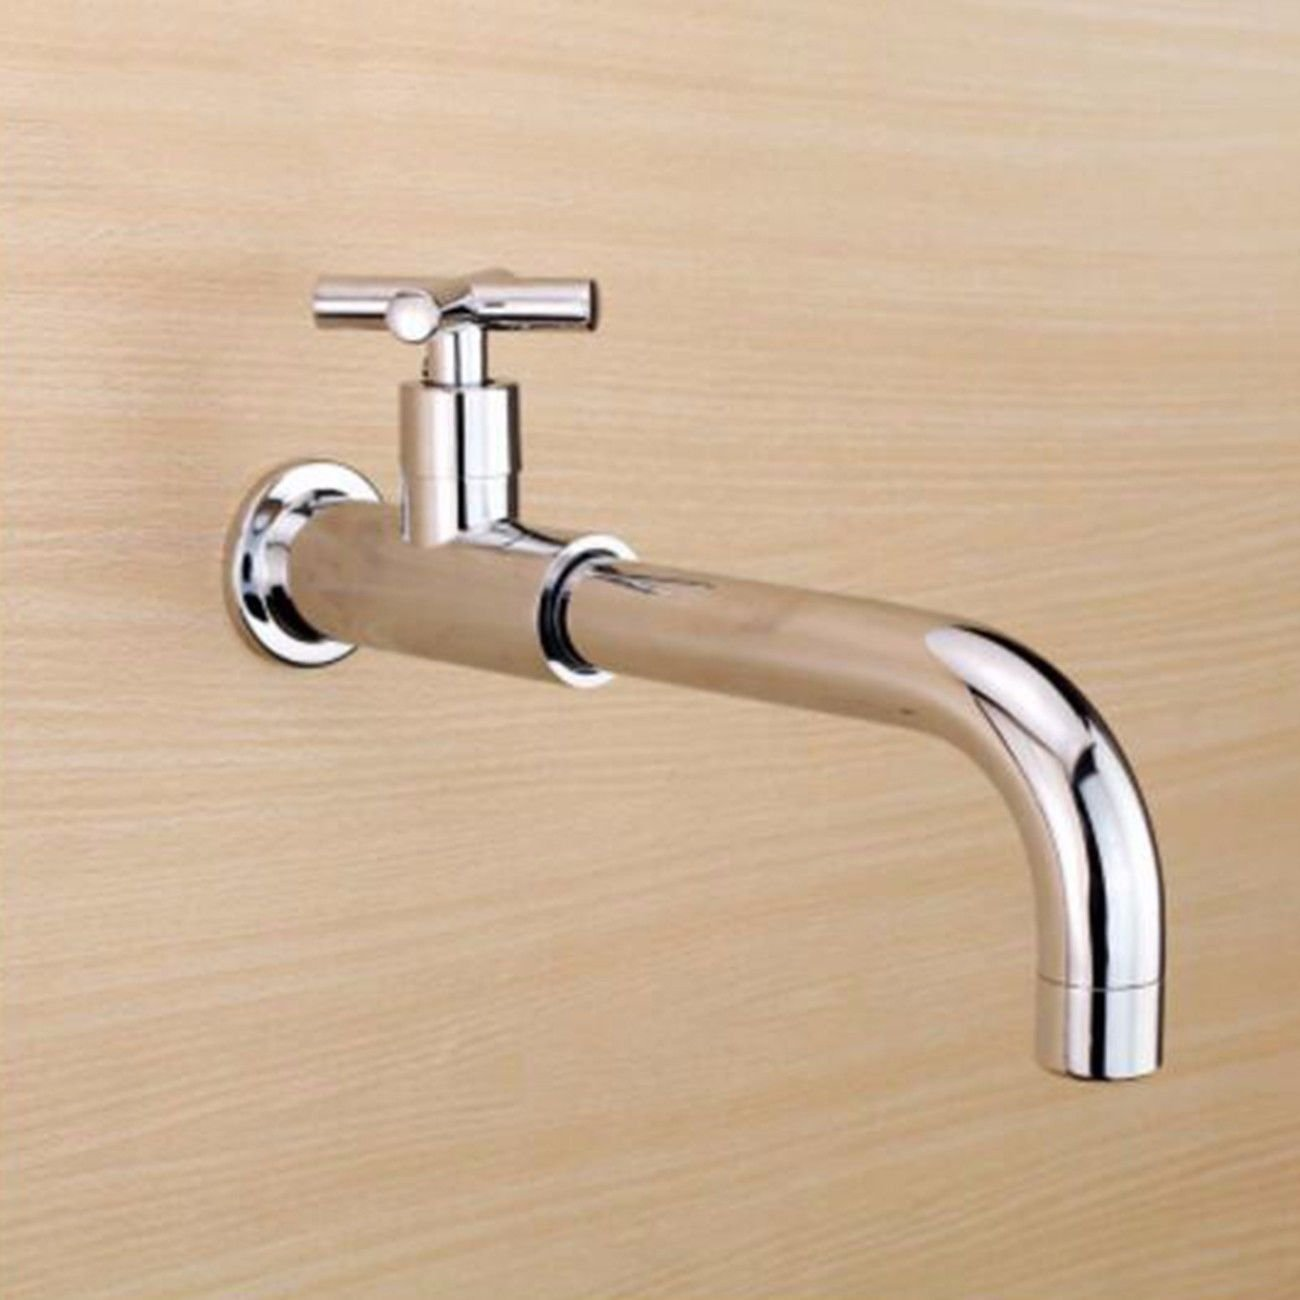 B Gyps Faucet Basin Mixer Tap Waterfall Faucet Antique Bathroom Mixer Bar Mixer Shower Set Tap antique bathroom faucet The WALL MOUNTED KITCHEN SINK single cold water taps full copper laundry pool and t